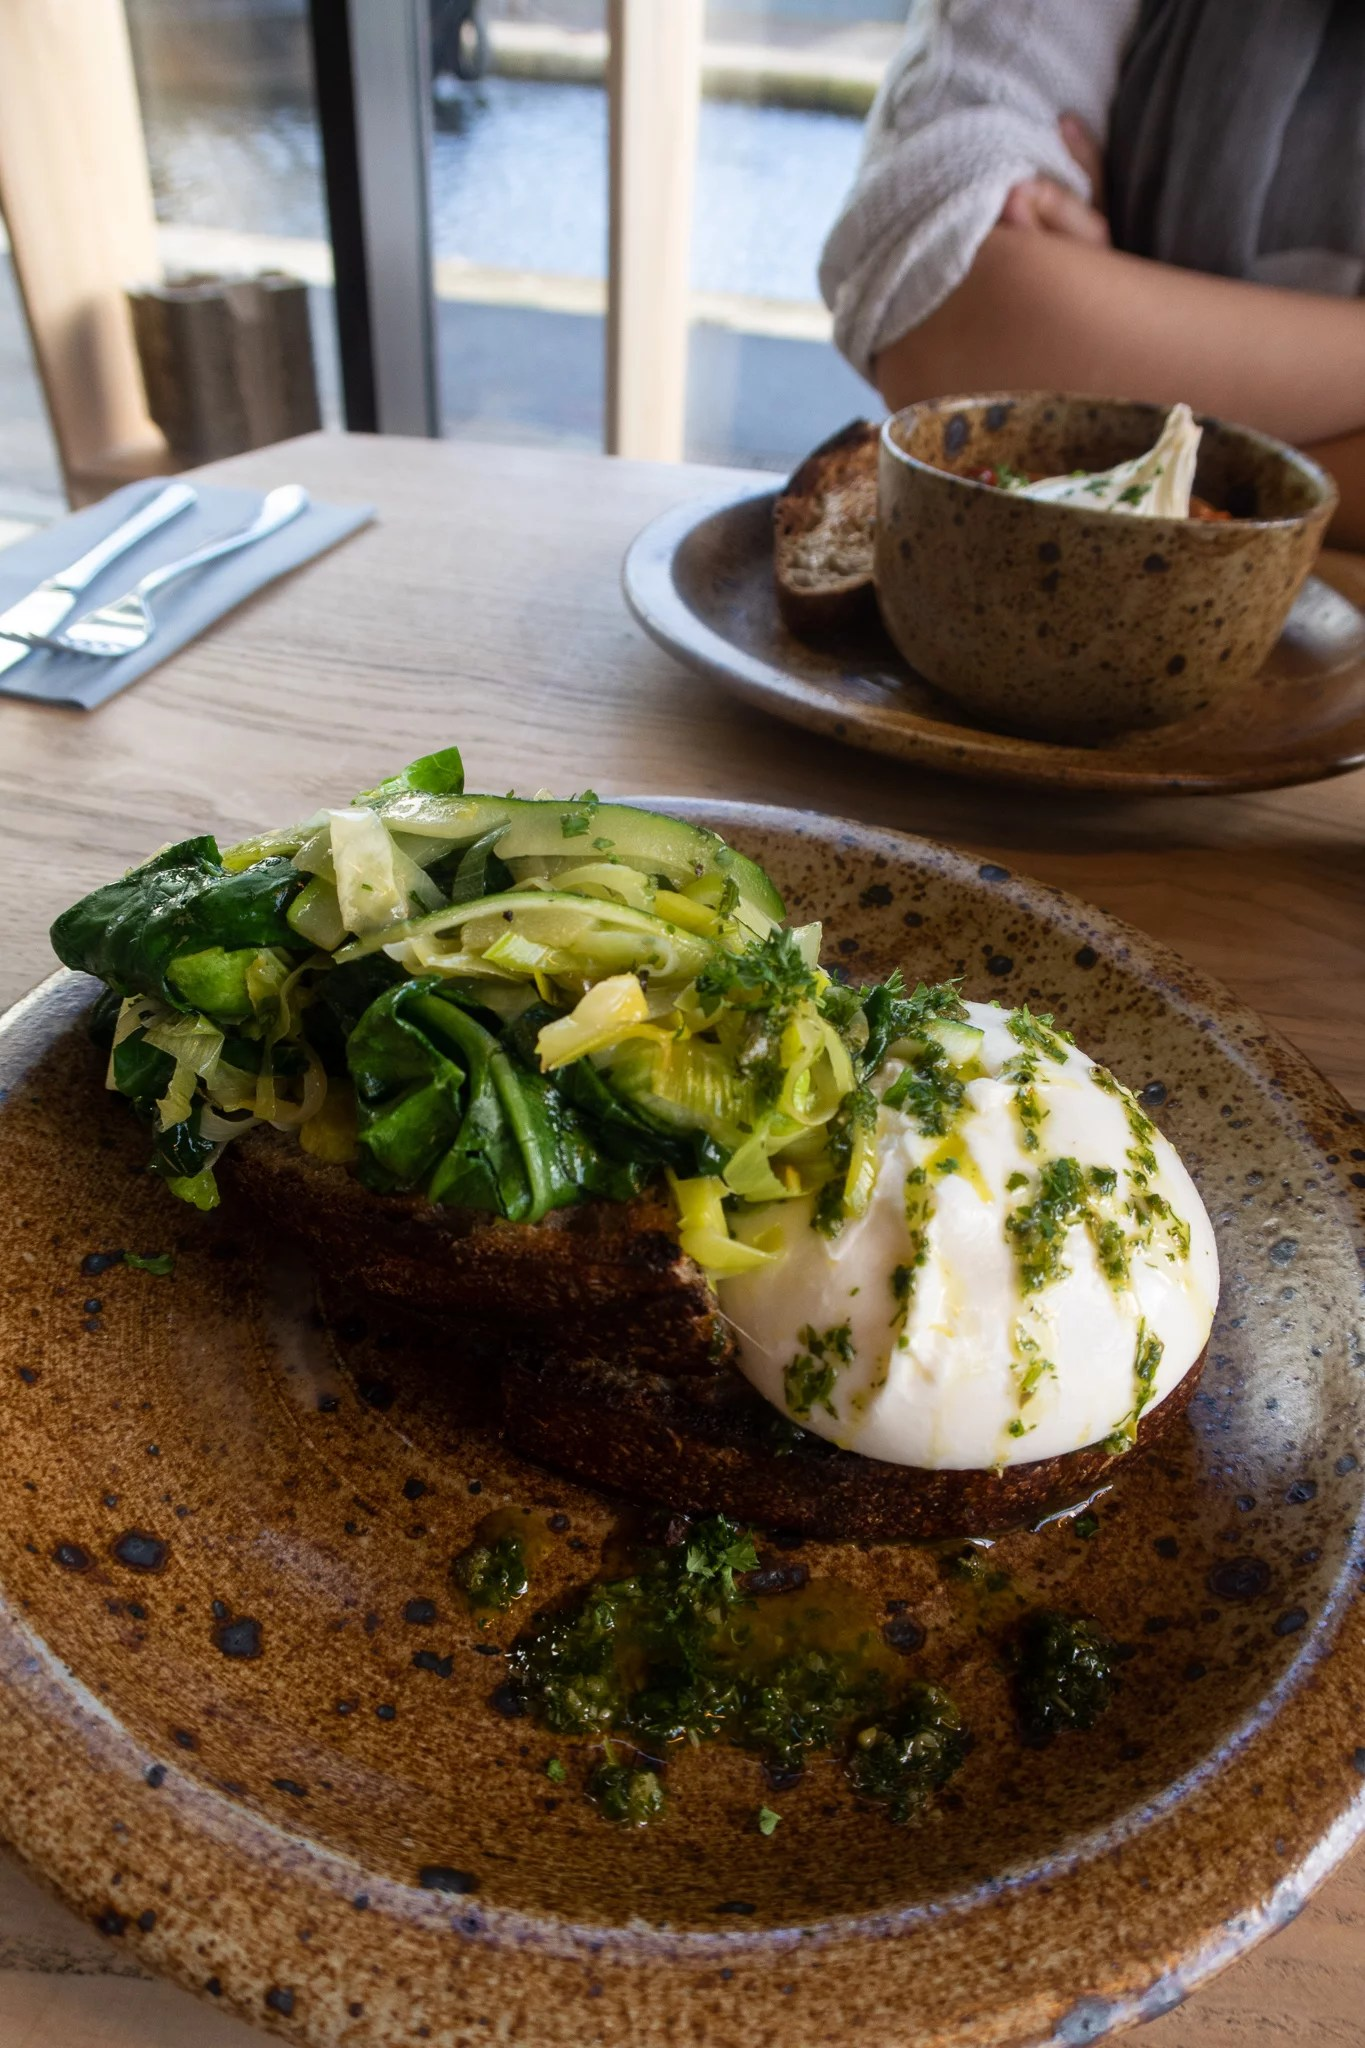 Burrata with buttered leeks and greens with salsa verde, served with 28 hour sourdough toast £8 (v)